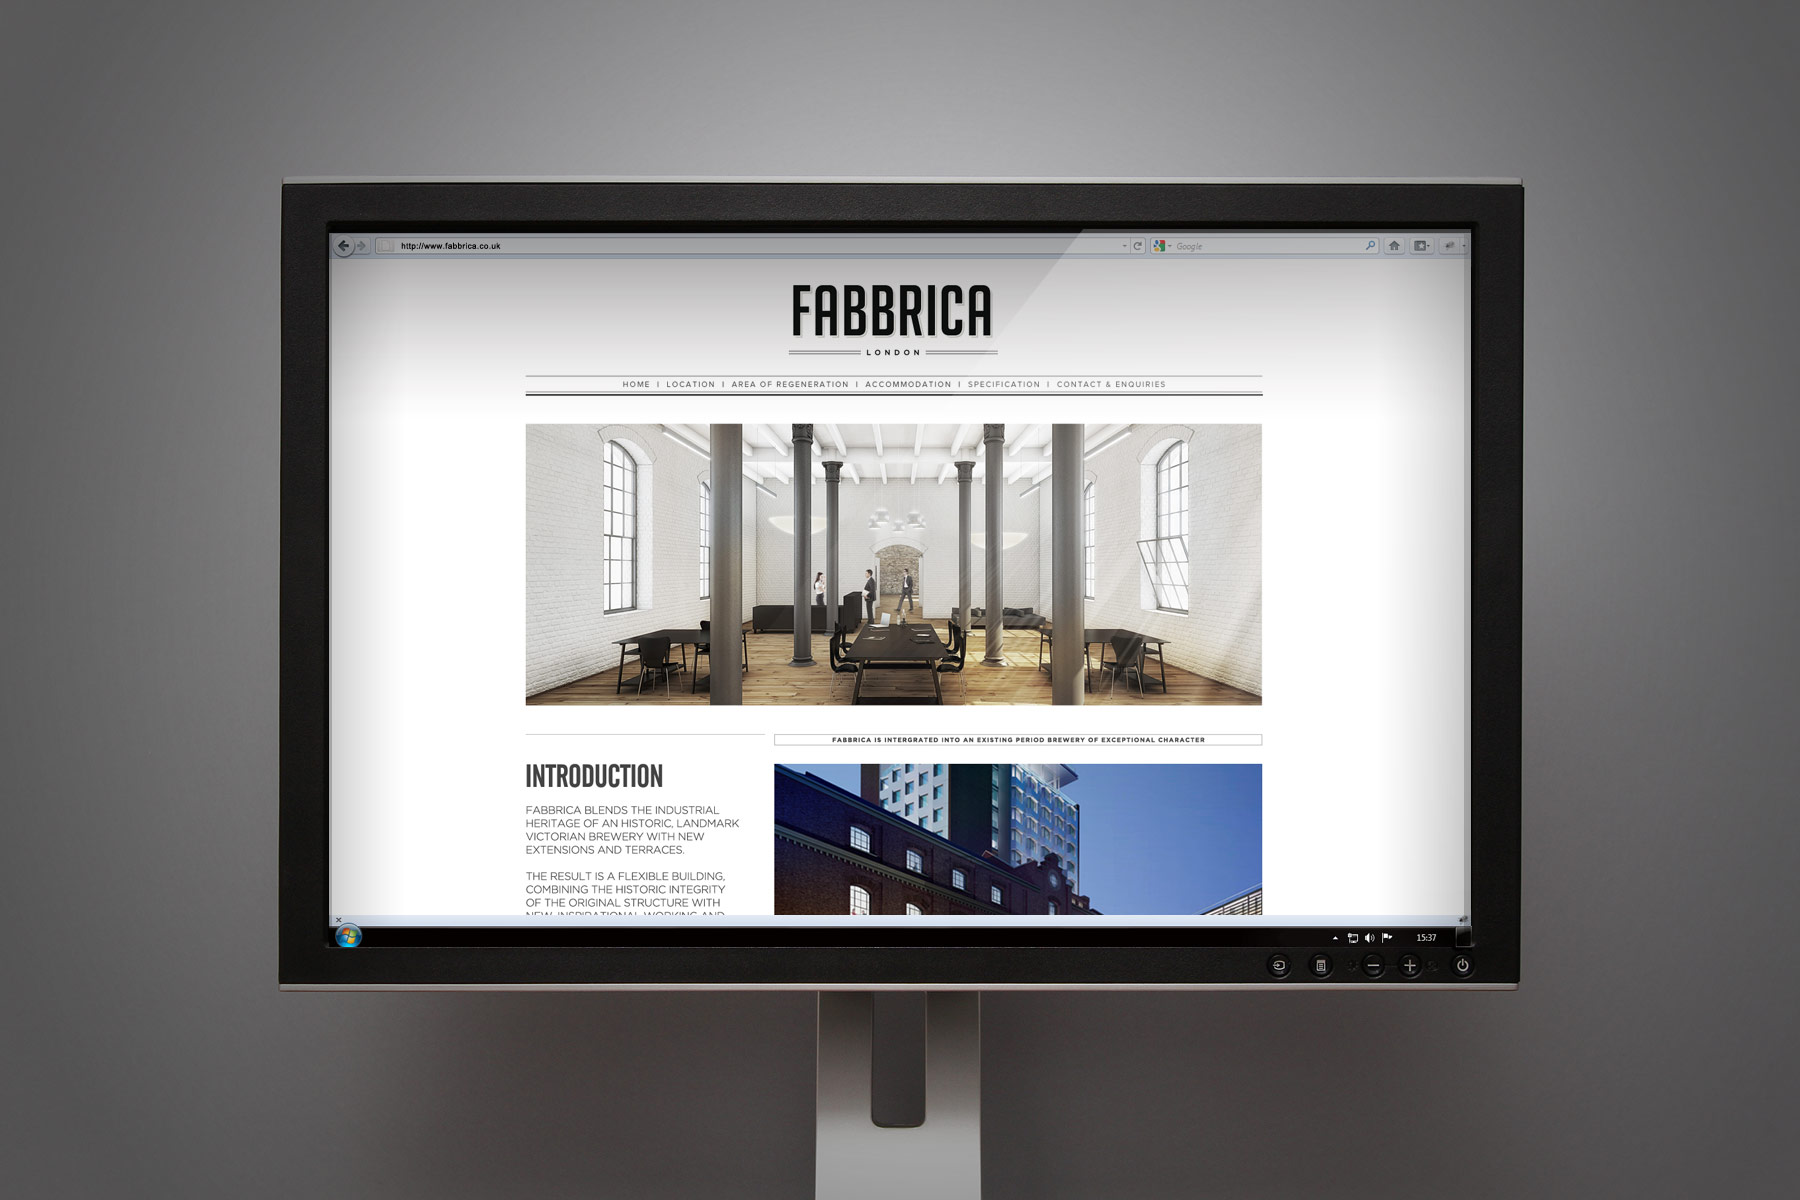 The Fabricca brand has its own dedicated website and brochure designed to sell the key attributes of the commercial development. The site is also built on the Wordpress CMS system.